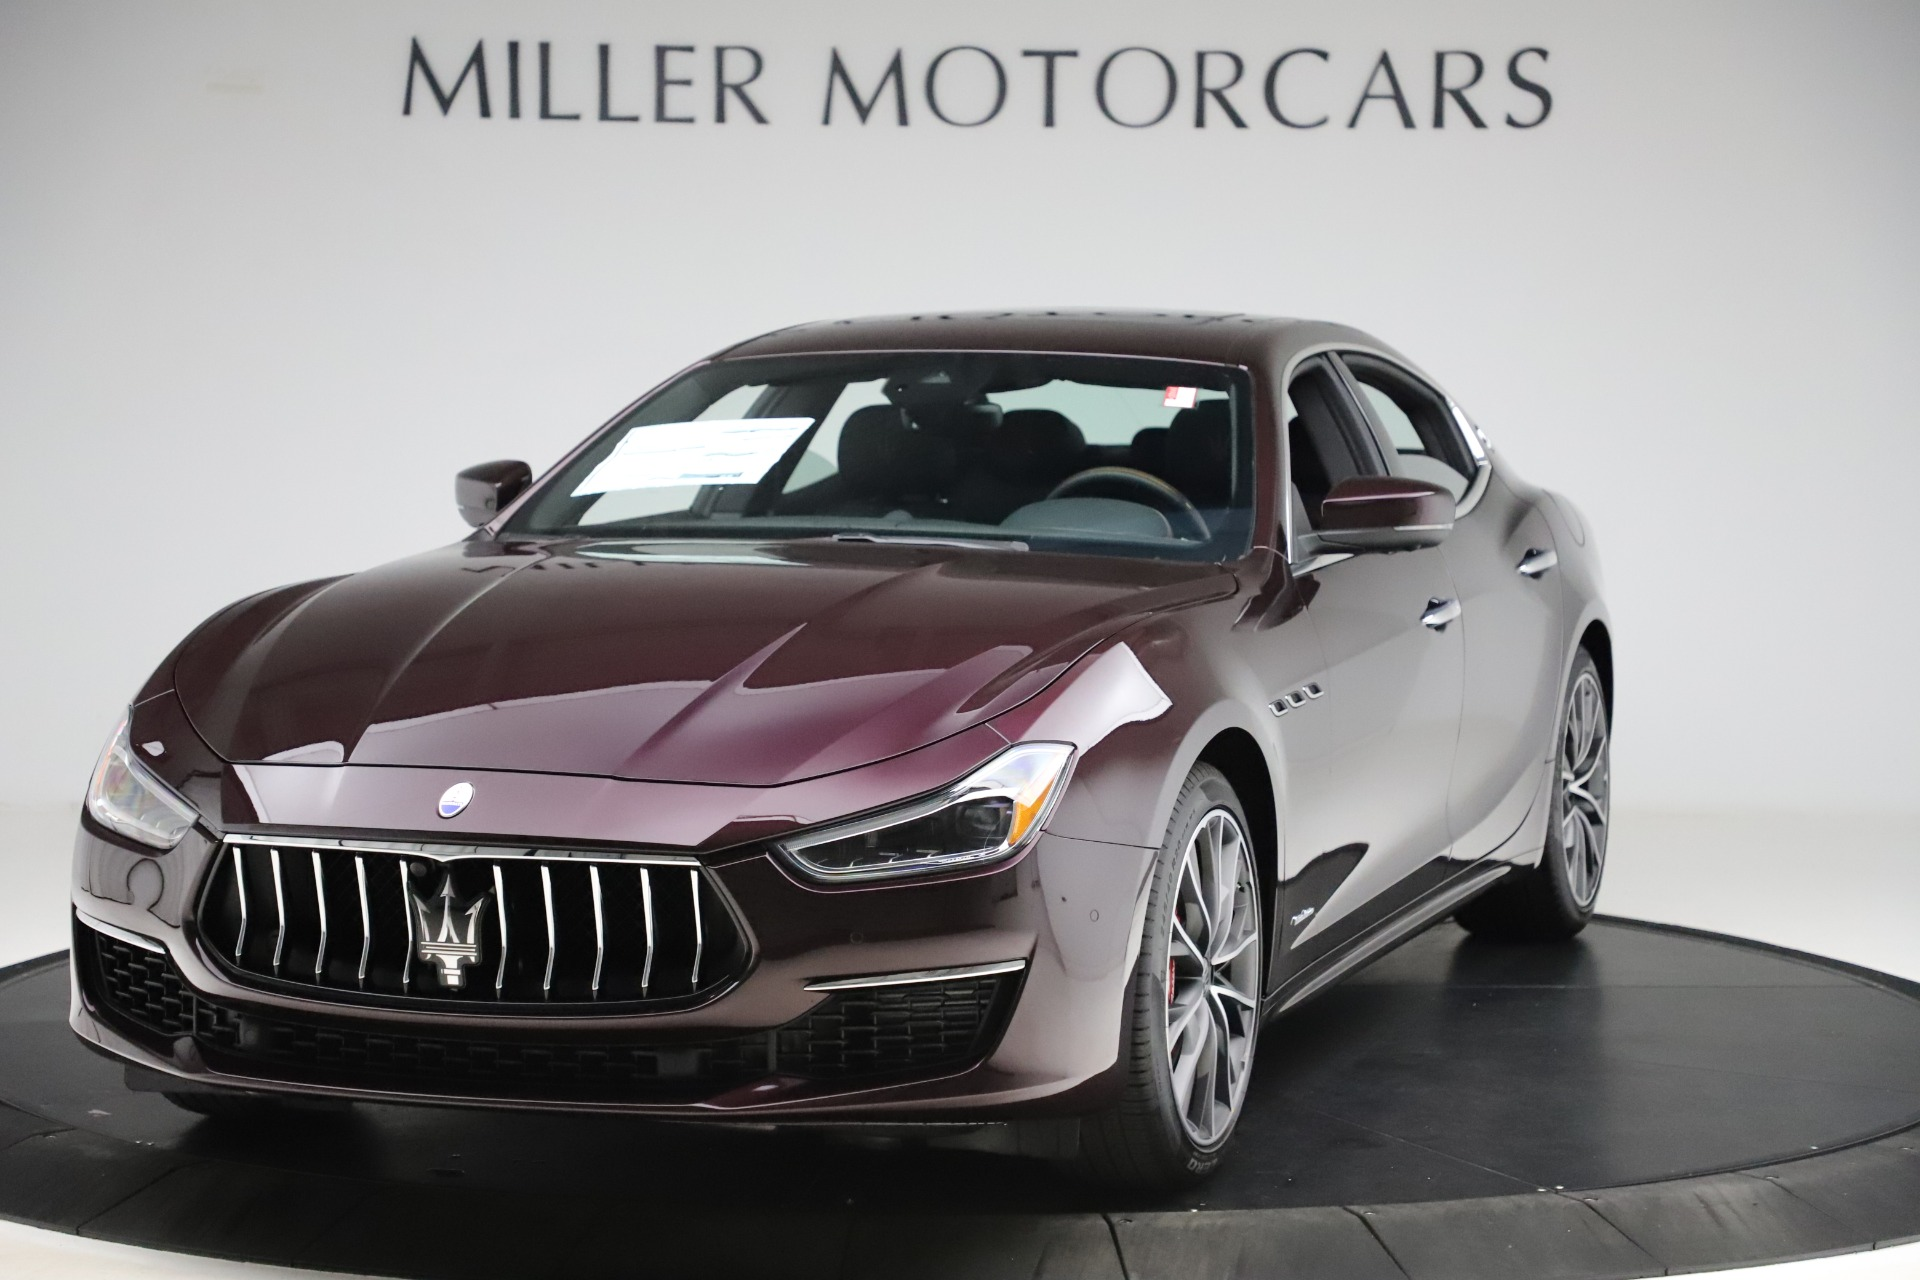 New 2020 Maserati Ghibli S Q4 GranLusso for sale $94,335 at McLaren Greenwich in Greenwich CT 06830 1